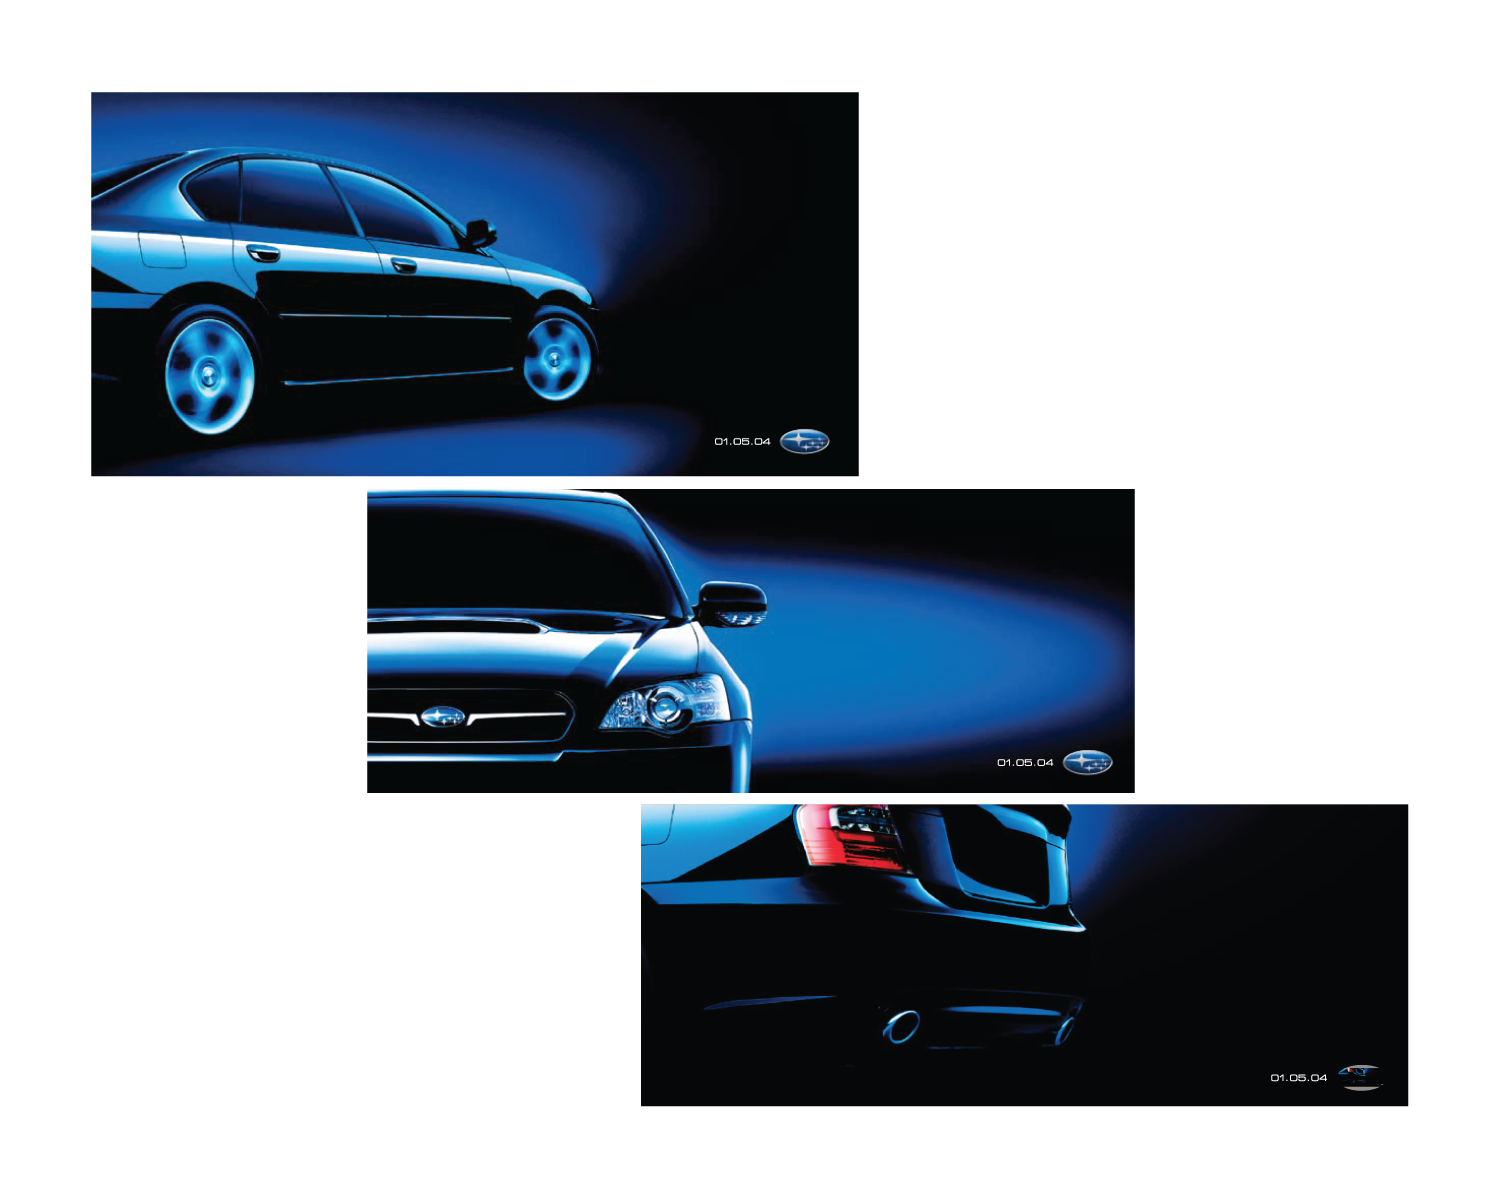 Waaaaaay back in the day I worked on Subaru America. This was an outdoor teaser campaign for the Detroit Auto Show. Was the first redesign of the Legacy in several years.